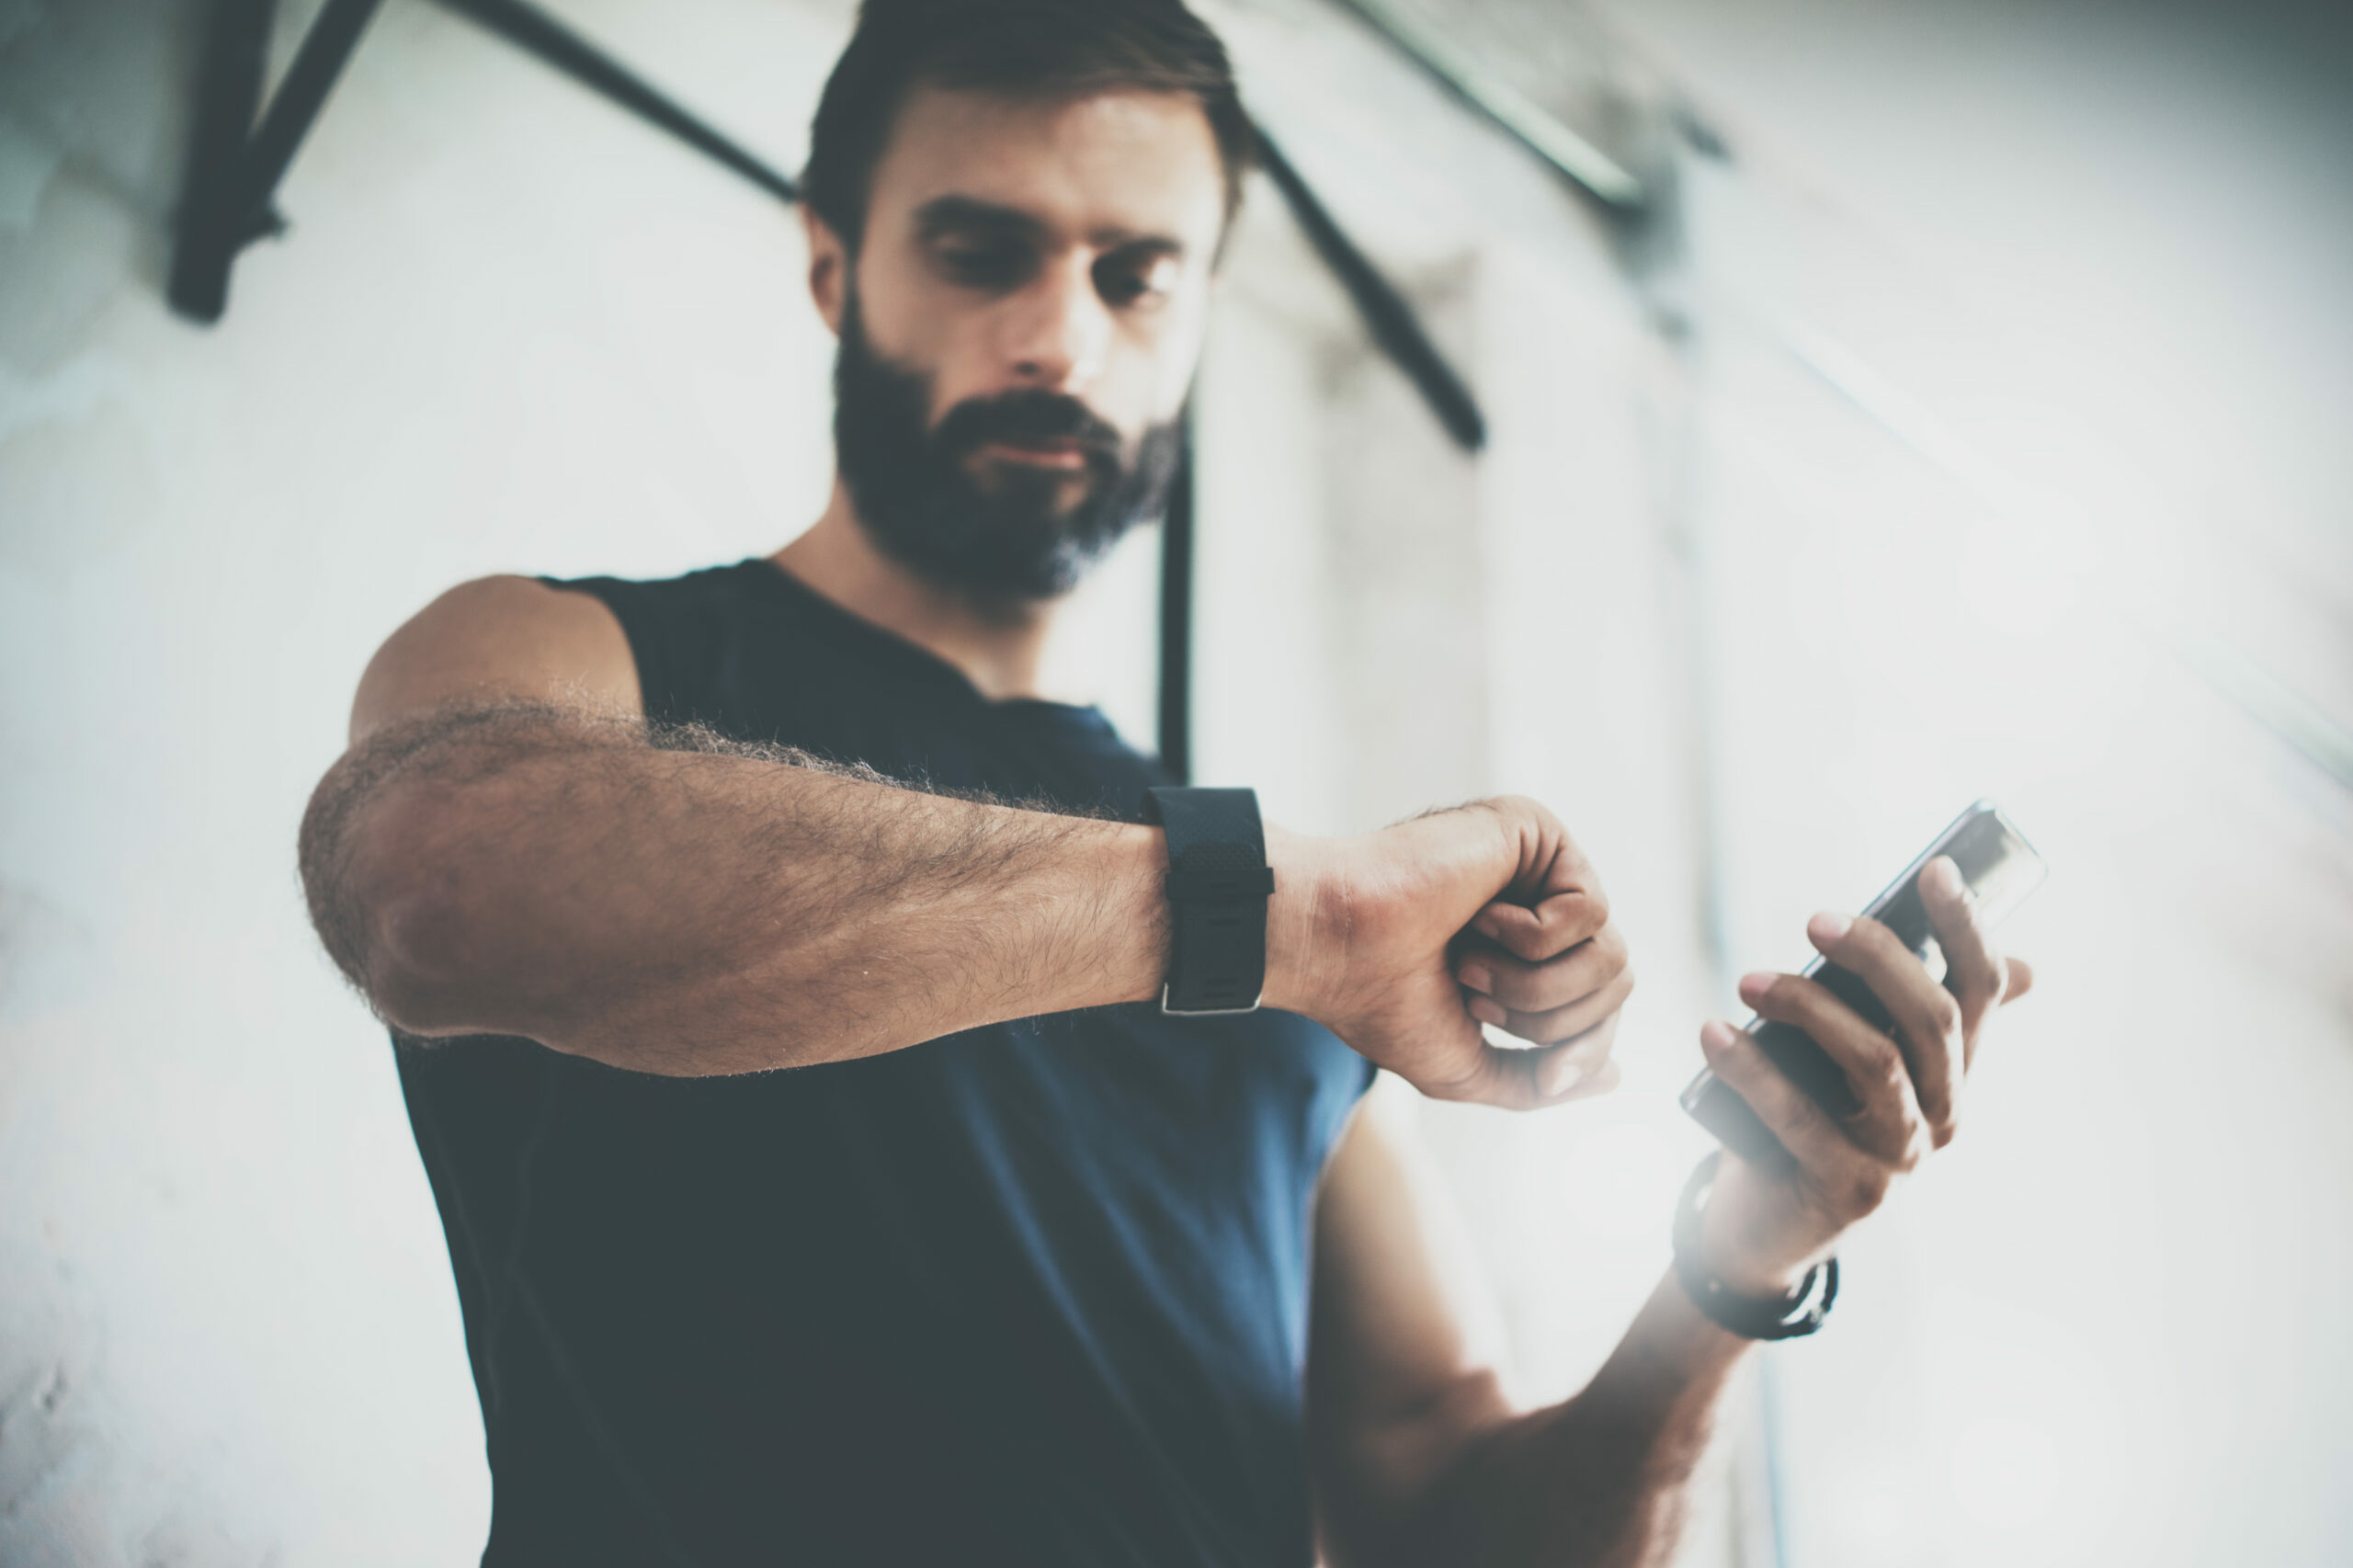 Mann mit Bart checkt Smart-Watch nach Workout